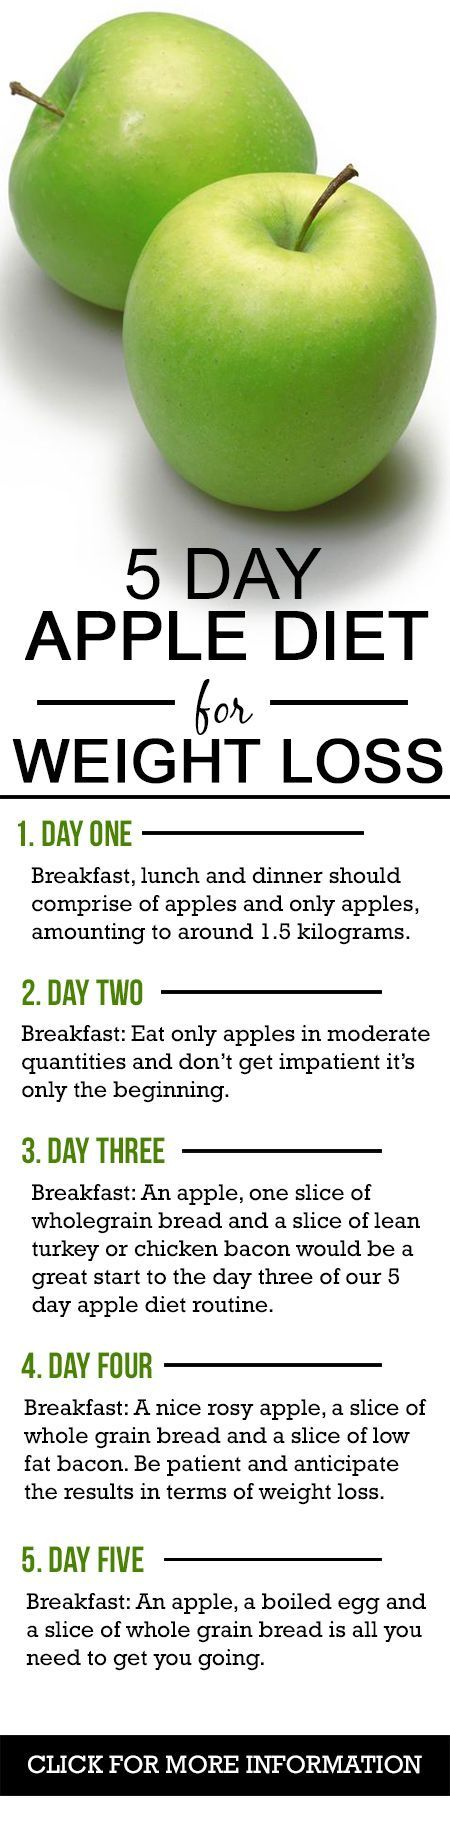 1000+ images about DIETS on Pinterest